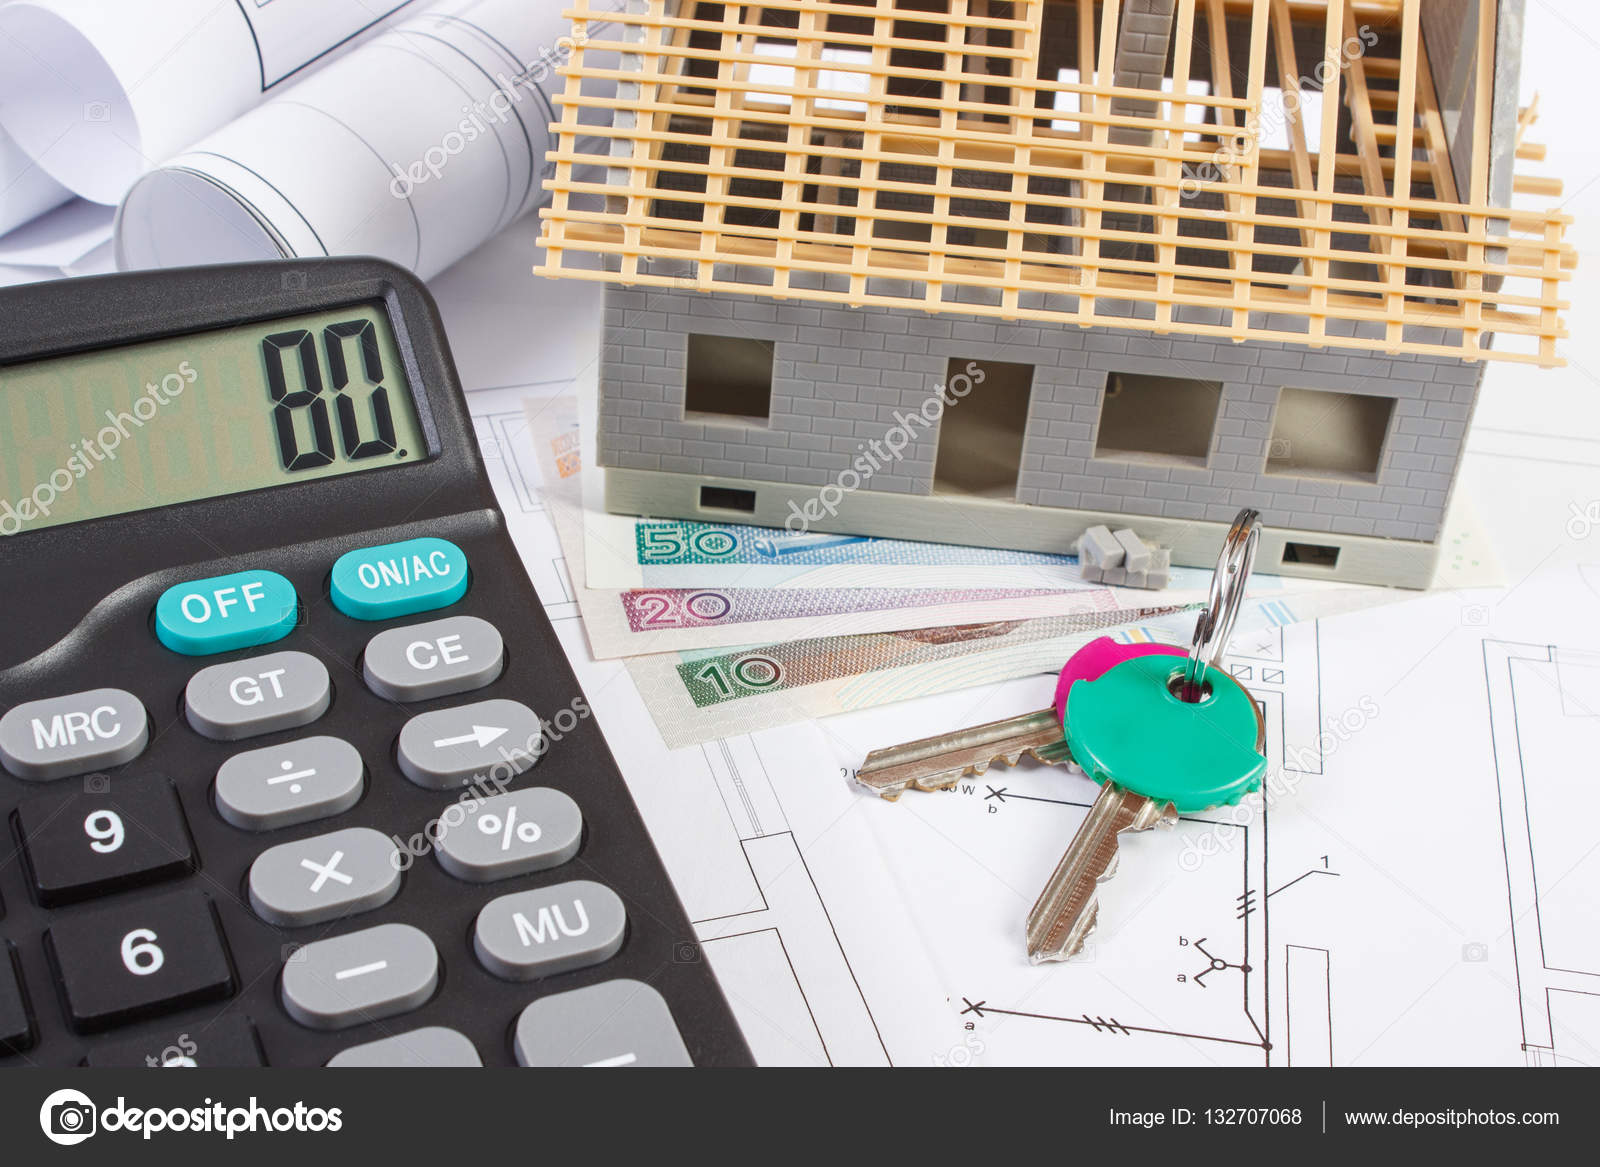 House under construction keys calculator polish currency and house under construction keys calculator polish currency and electrical drawings concept of ccuart Image collections